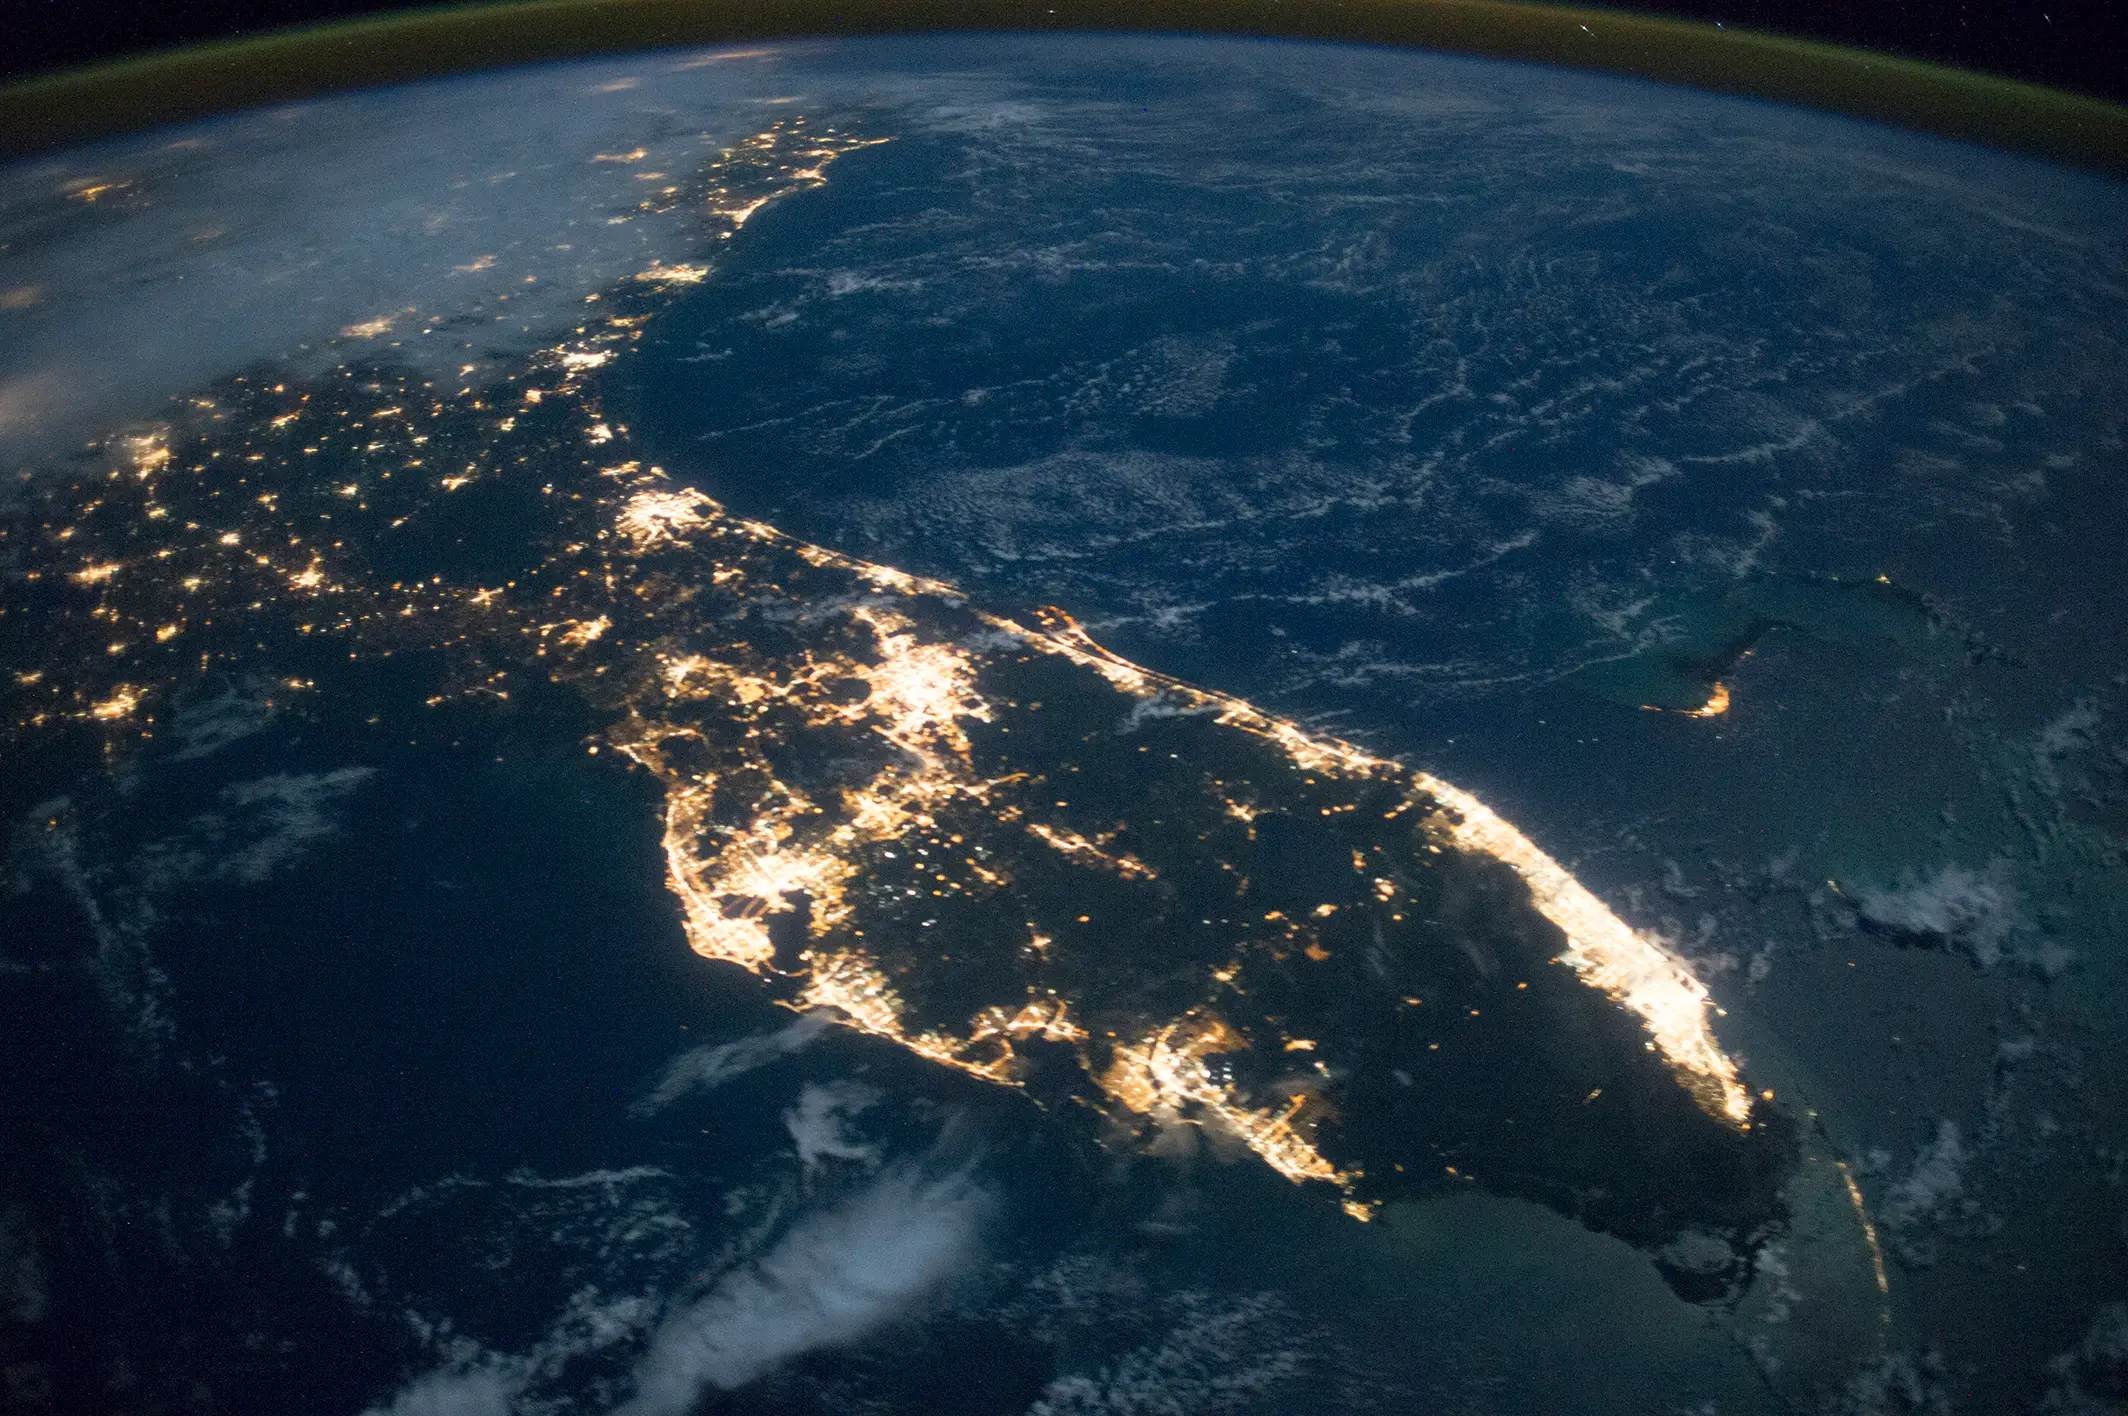 Astronauts aboard the International Space Station took this photograph of Florida in October 2014.